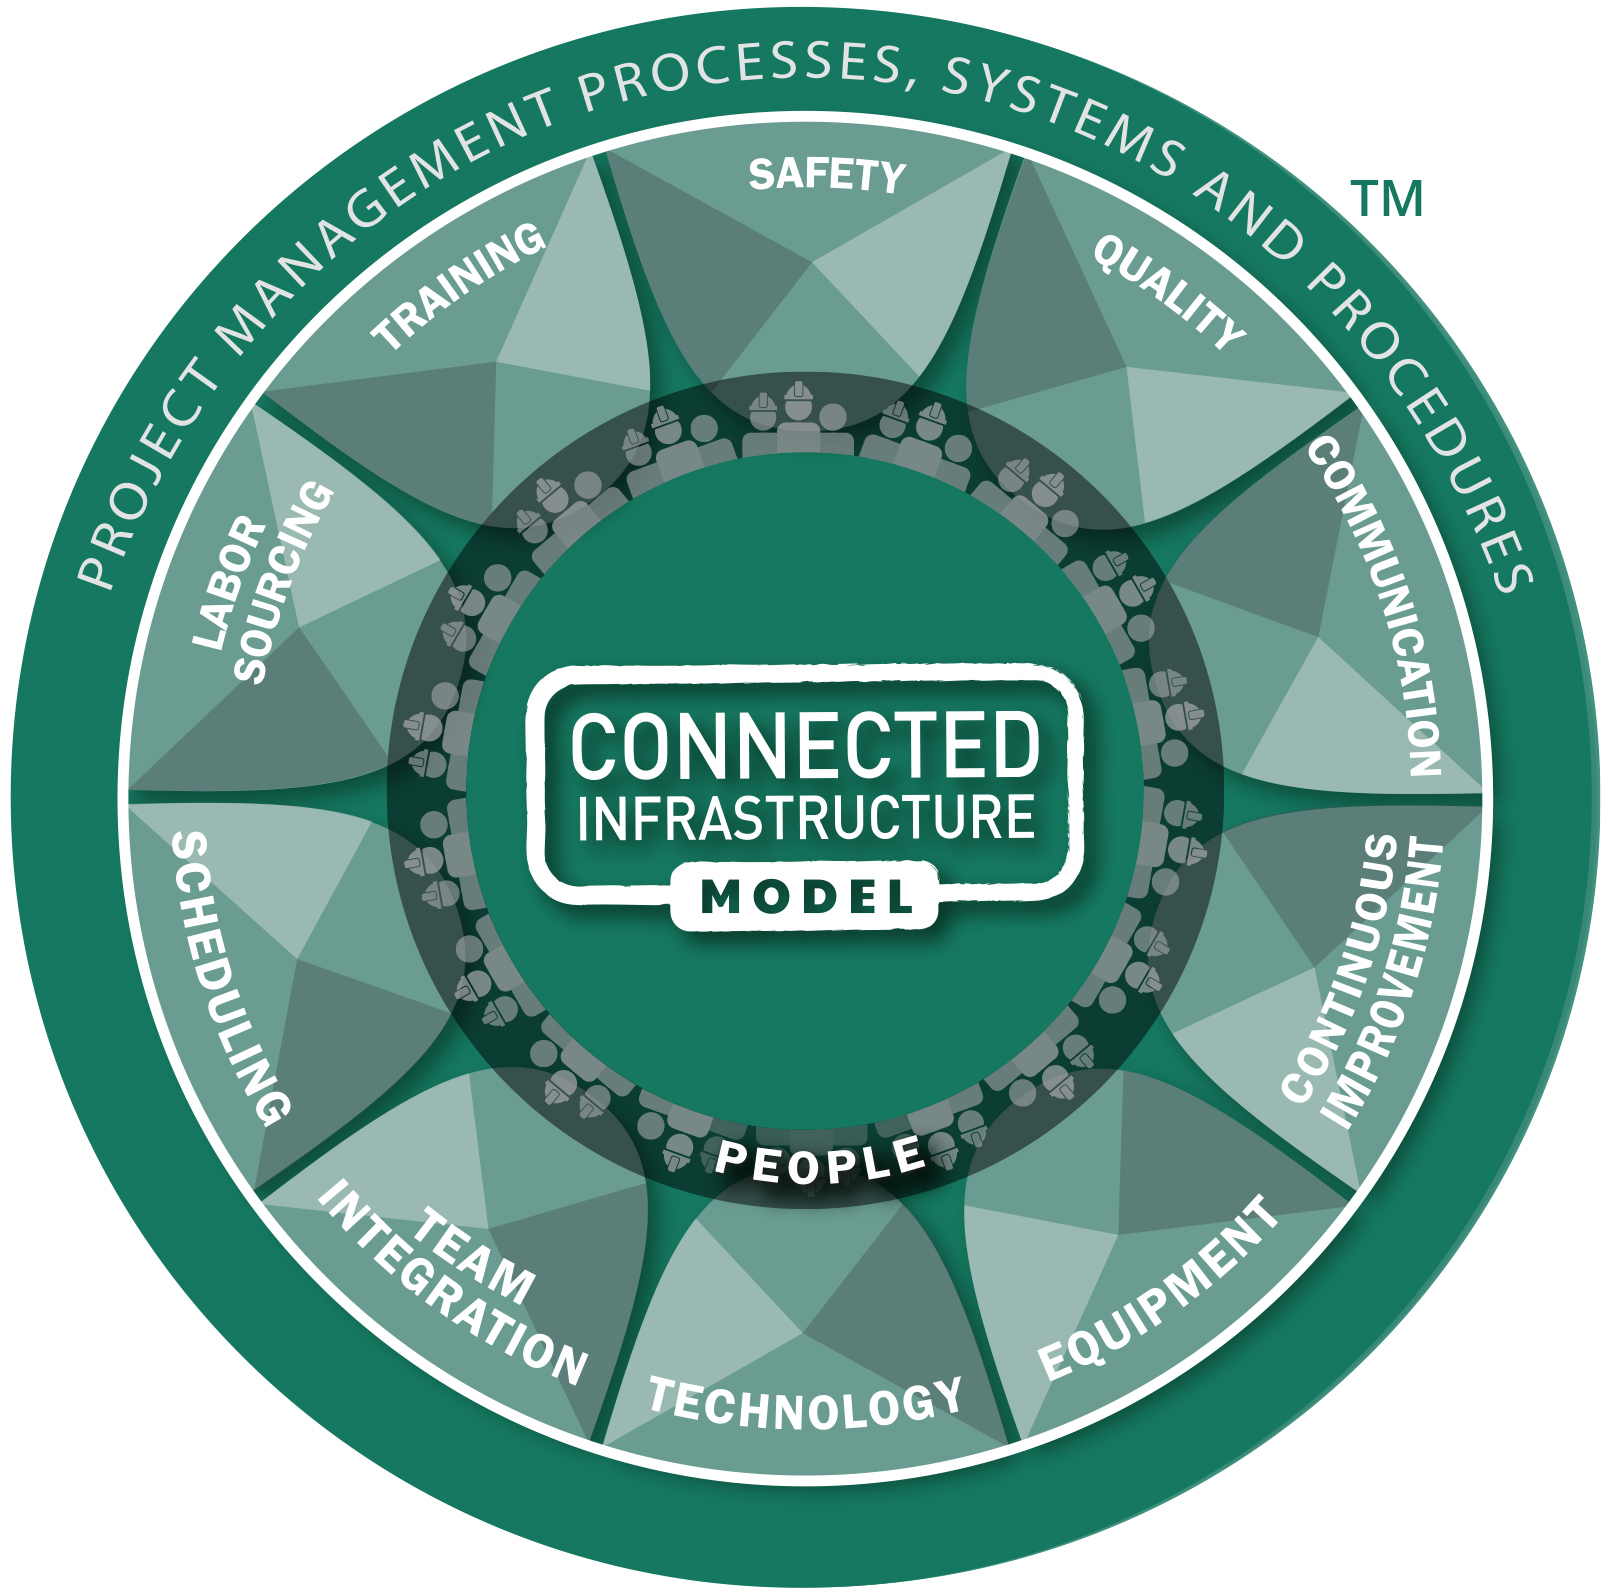 The Connected Infrastructure Model